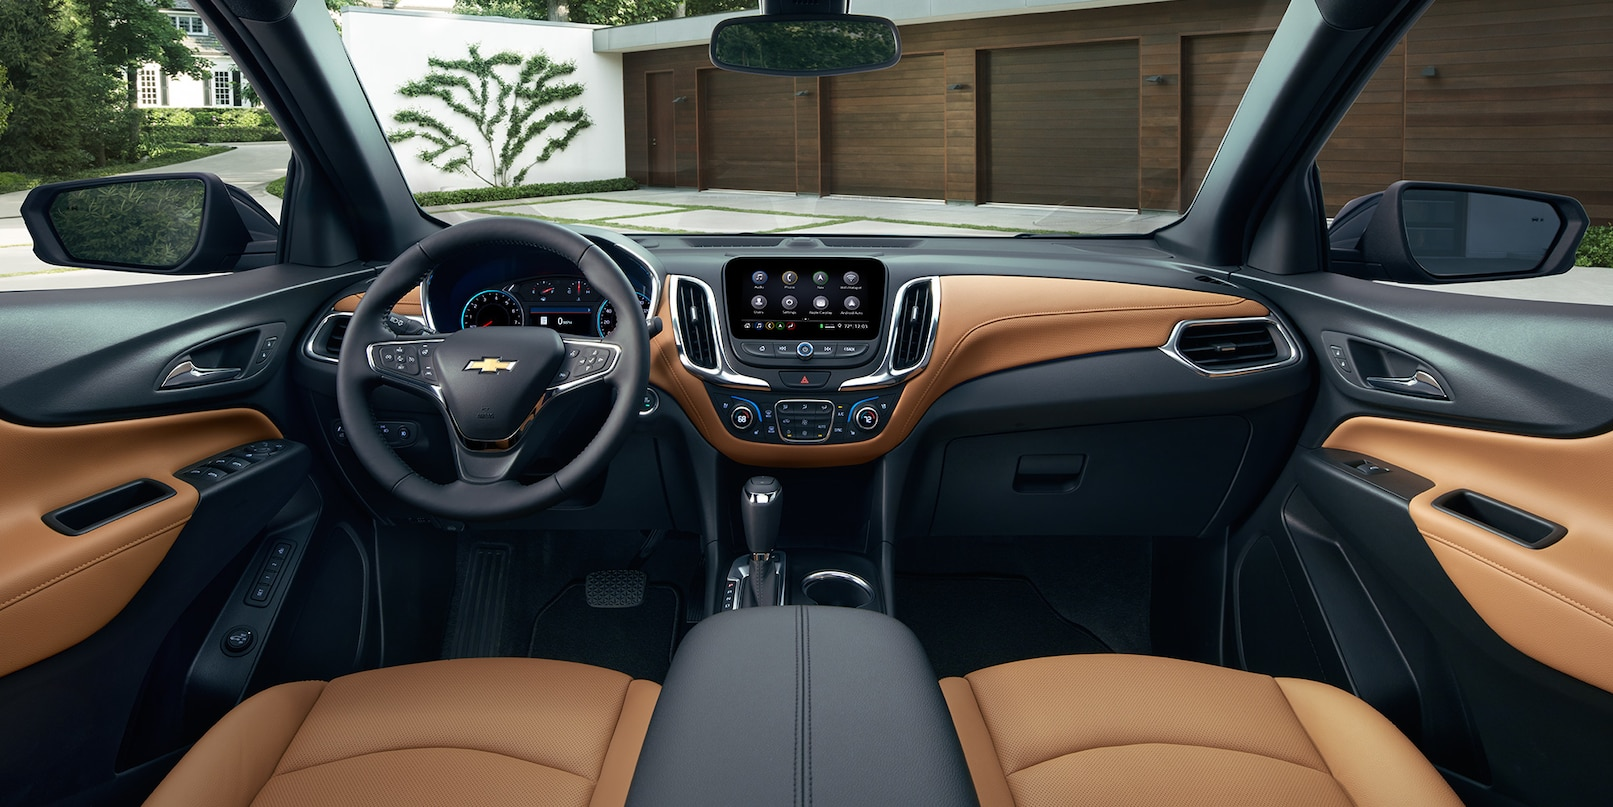 Interior of the 2019 Equinox